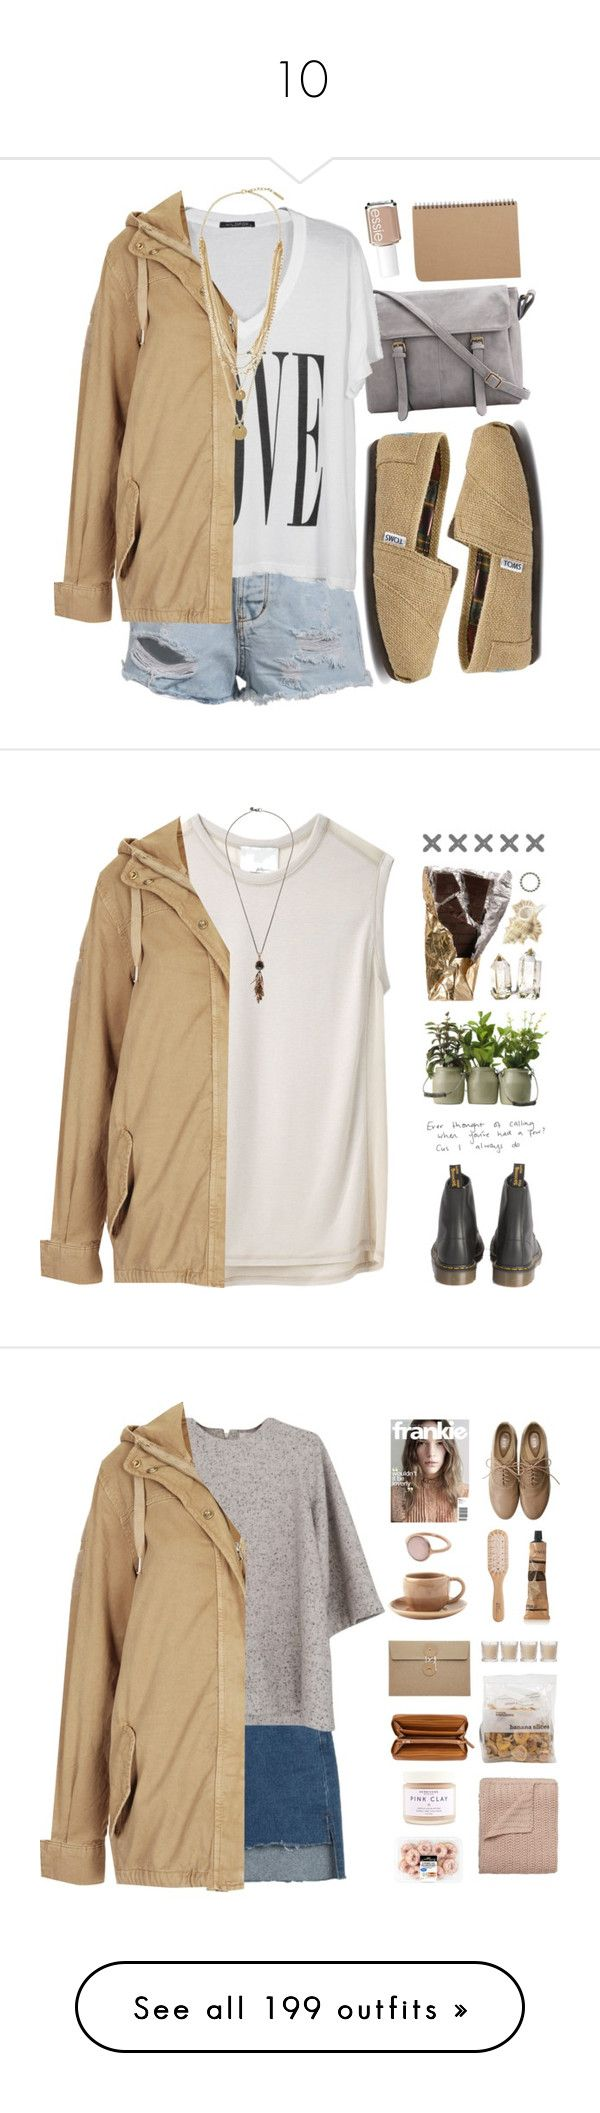 """""""10"""" by vicky-soleil ❤ liked on Polyvore featuring outerwear, jackets, coats, coats & jackets, sand, topshop parka, short-sleeve jackets, lightweight parka jacket, cotton jacket and lightweight cotton jacket"""